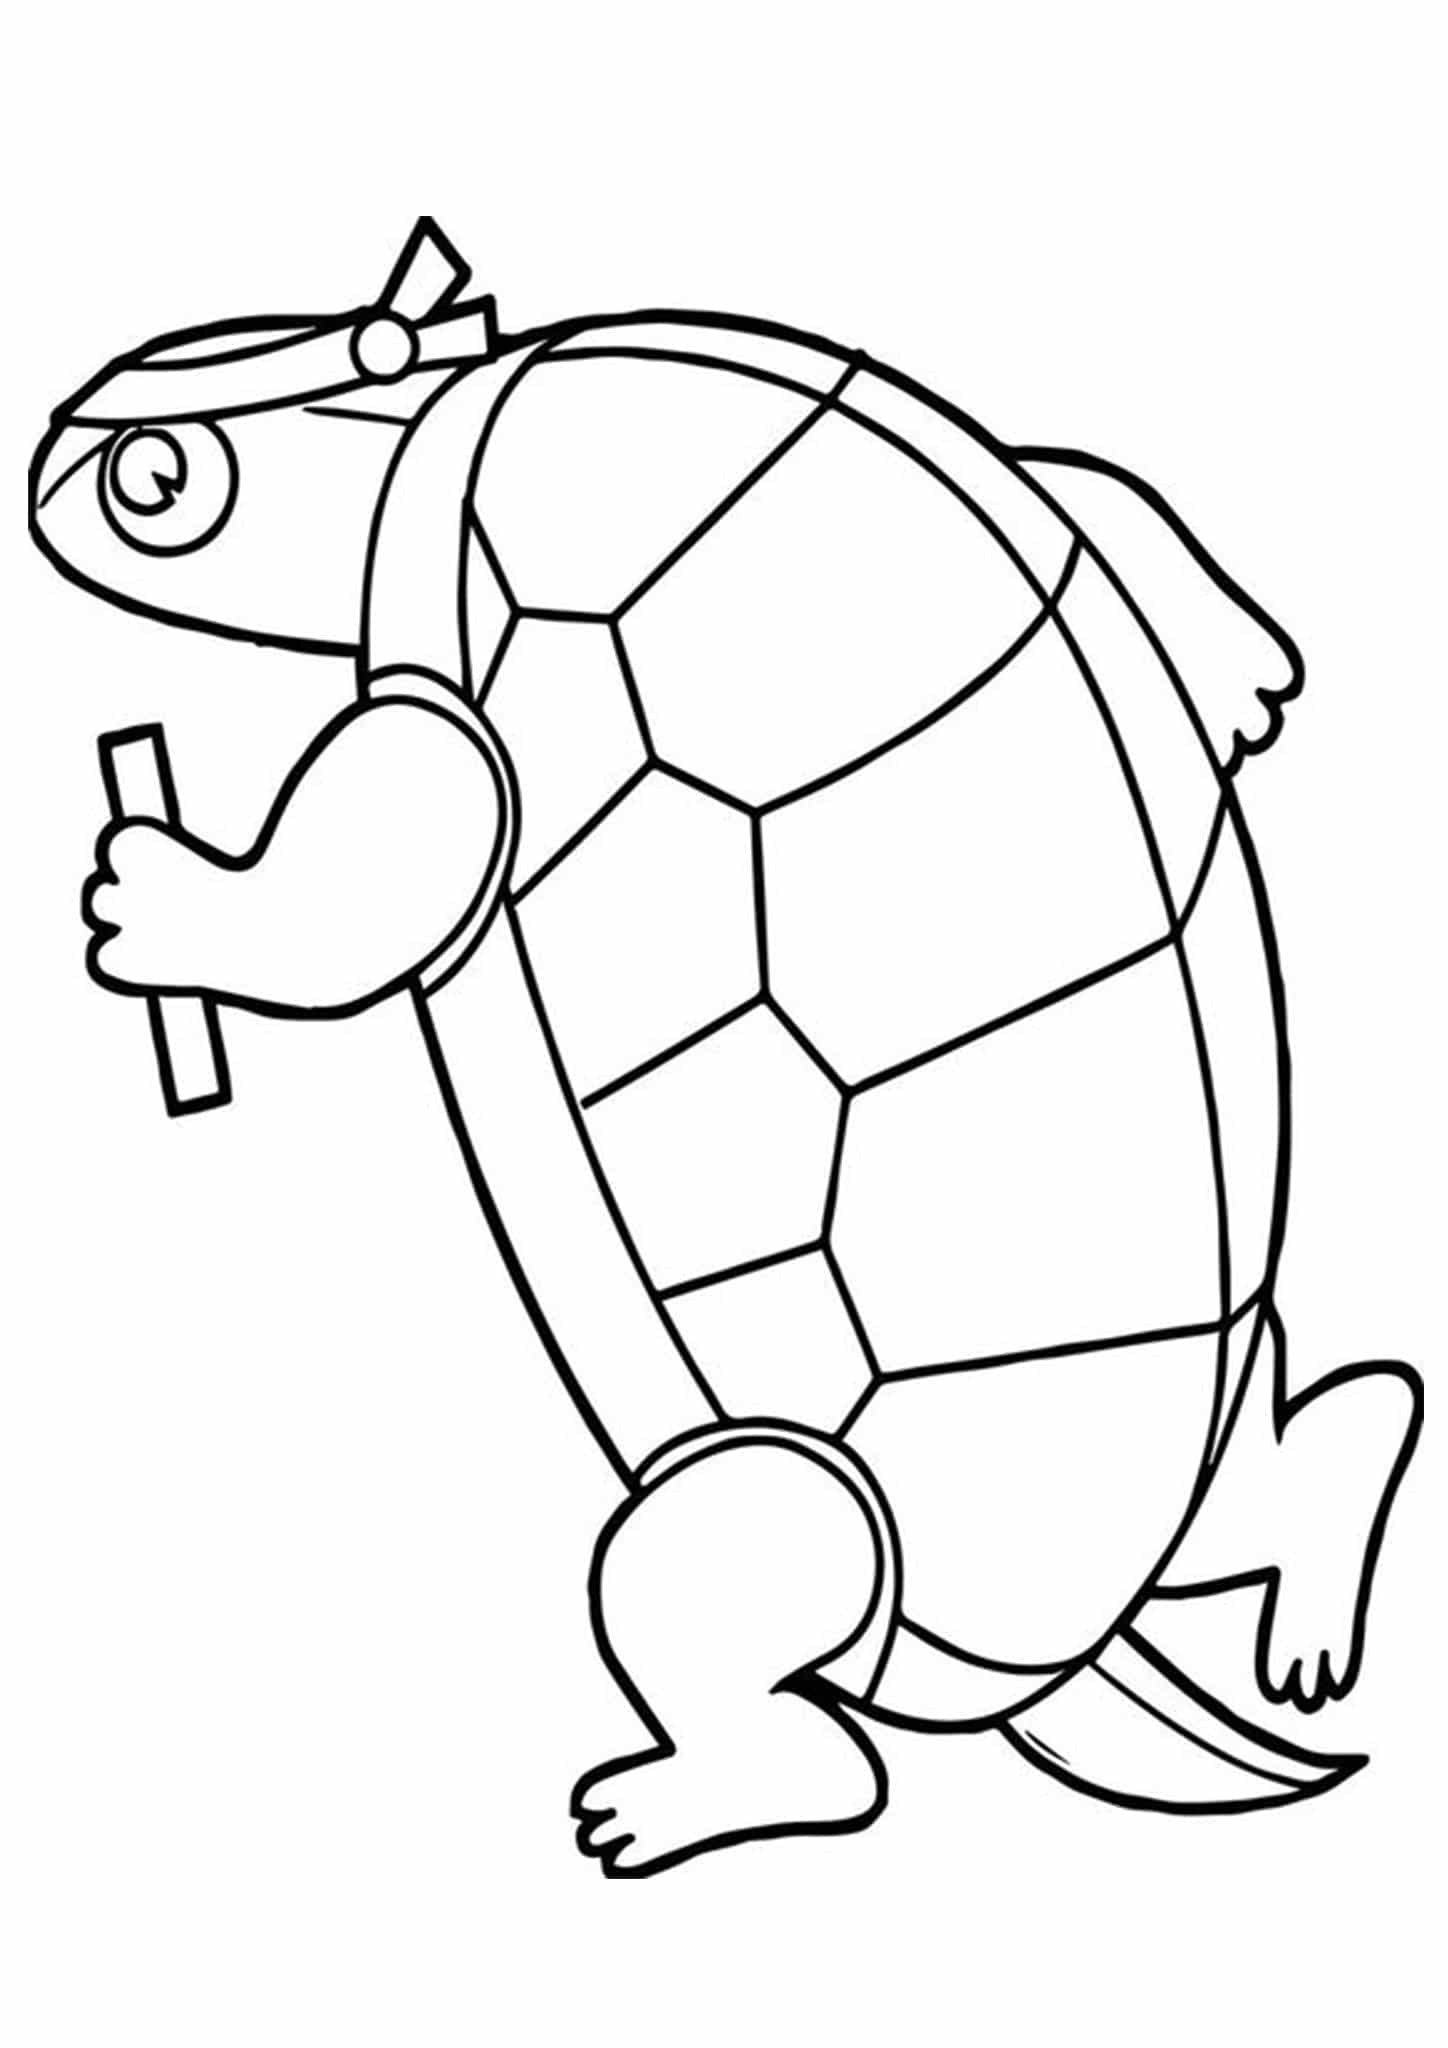 turtle coloring pictures print download turtle coloring pages as the turtle pictures coloring 1 1